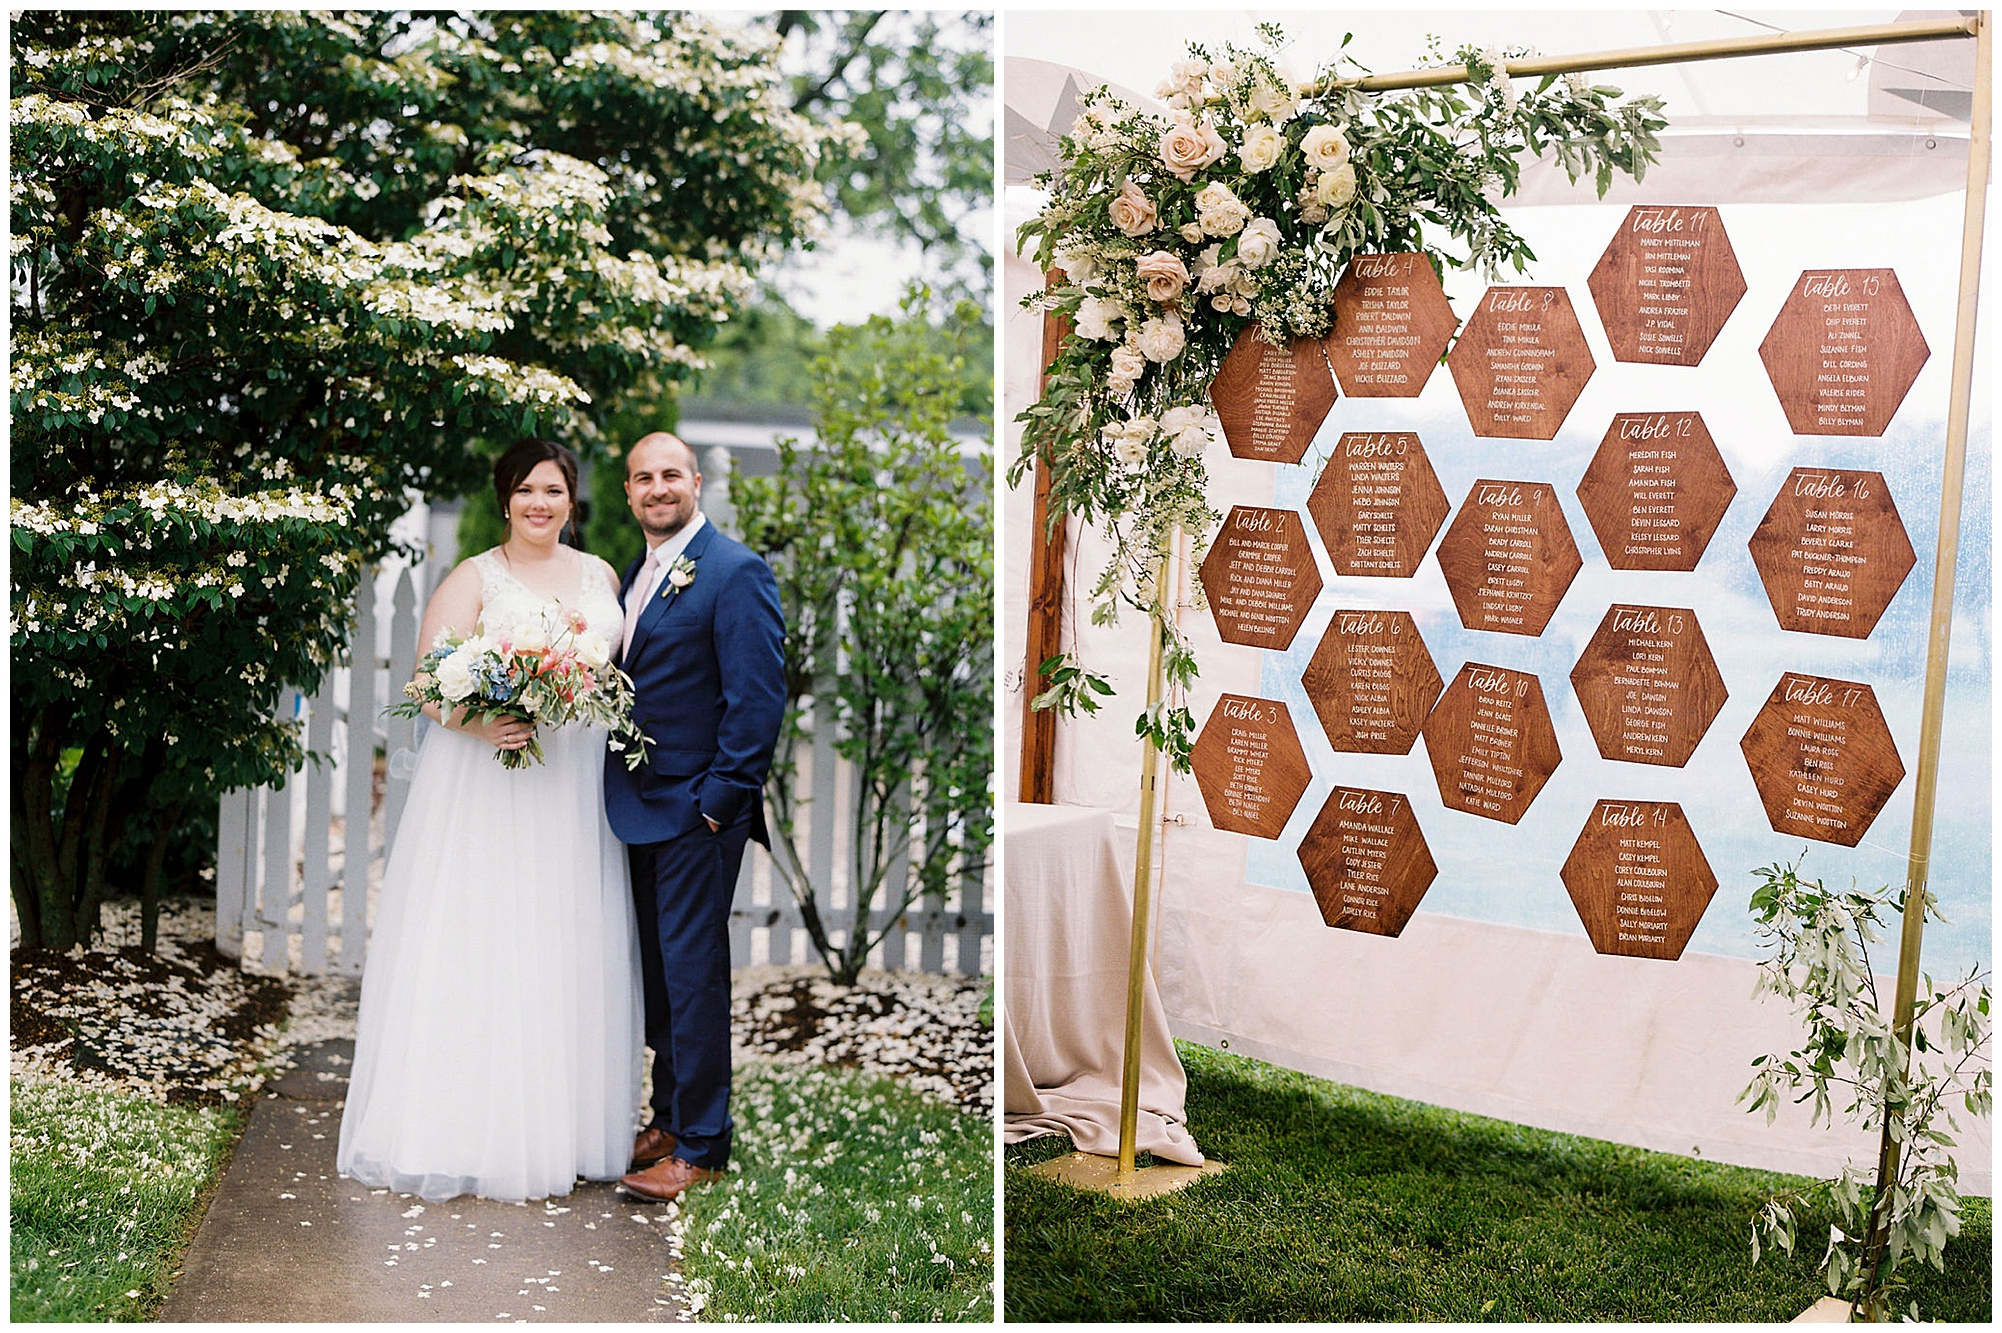 boho wedding inspiration in the garden from maryland eastern shore and photo of geometric natural woodgrain name place card escort display with untamed floral arbor arch with gold metal frame and greenery and white